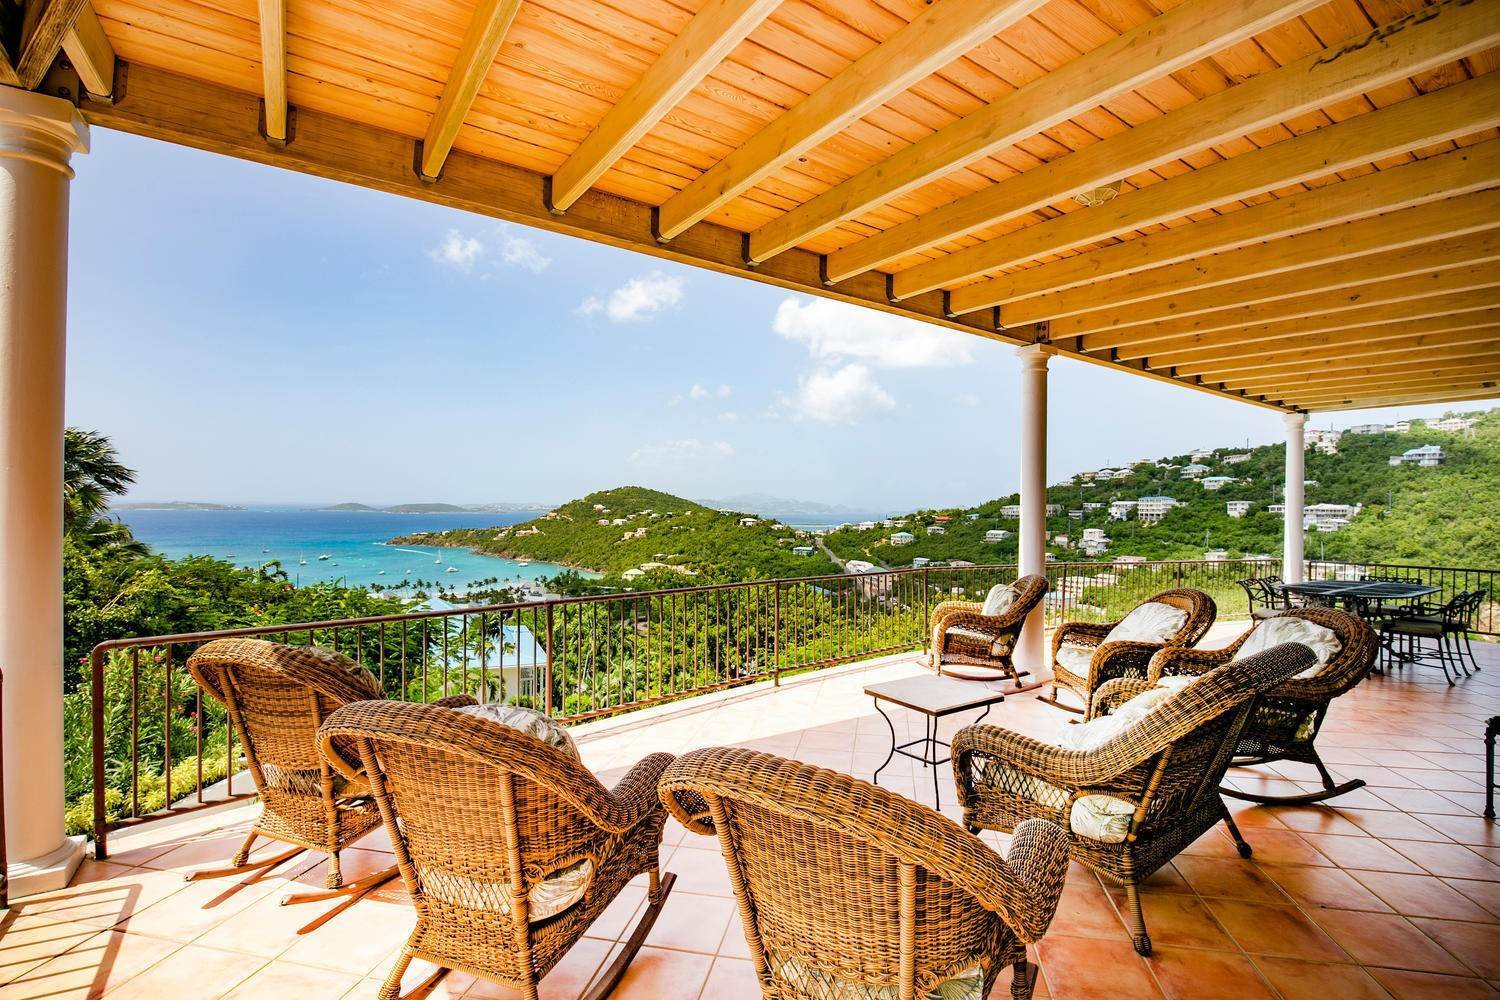 Single Family Homes for Sale at Address Not Available St John, Virgin Islands 00830 United States Virgin Islands